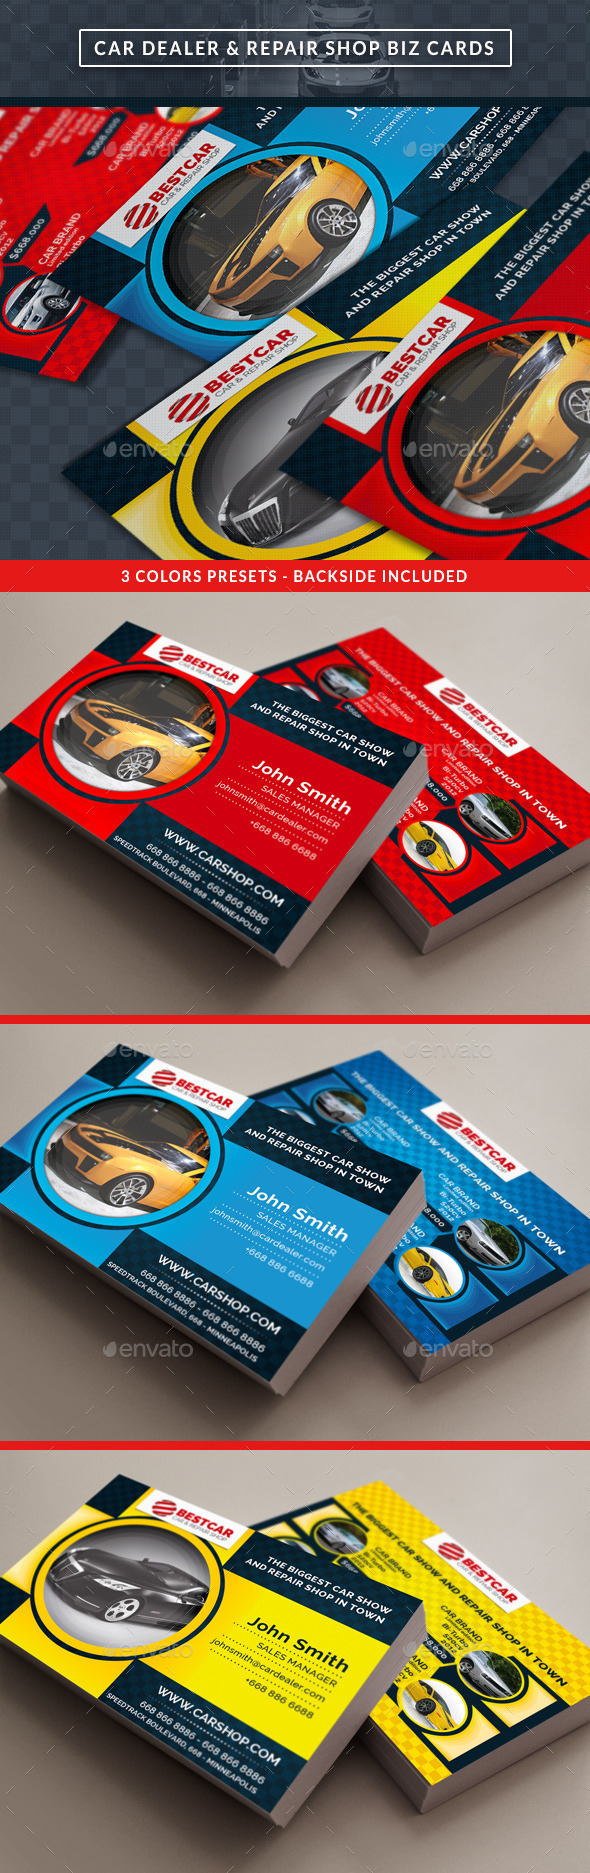 Car dealer auto services business card by gilledeville car dealer auto services business card business cards print templates magicingreecefo Image collections